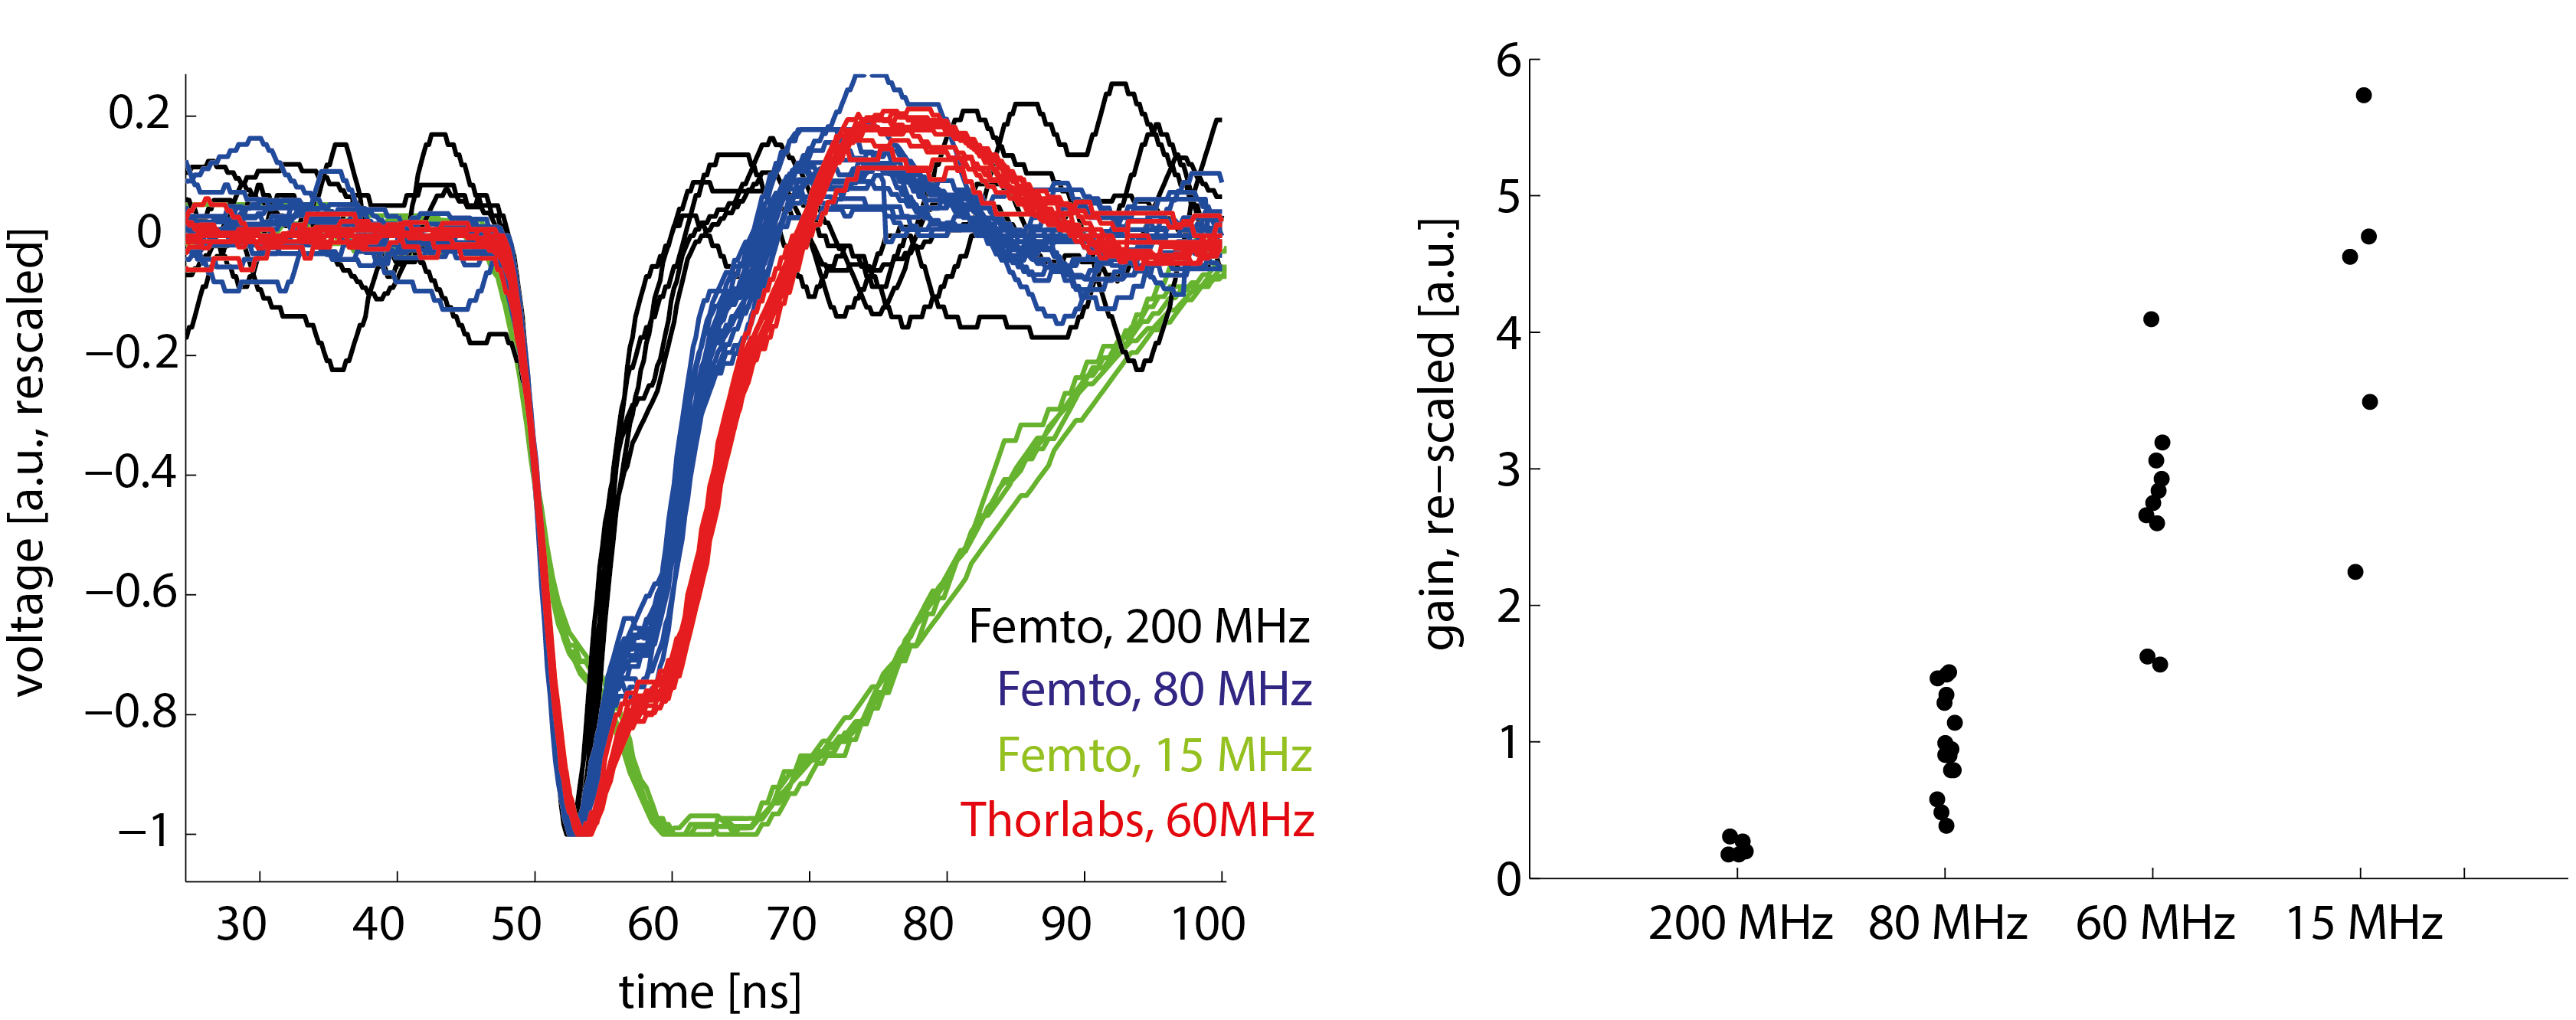 Preamplifier bandwidth & two ways of counting photons | A